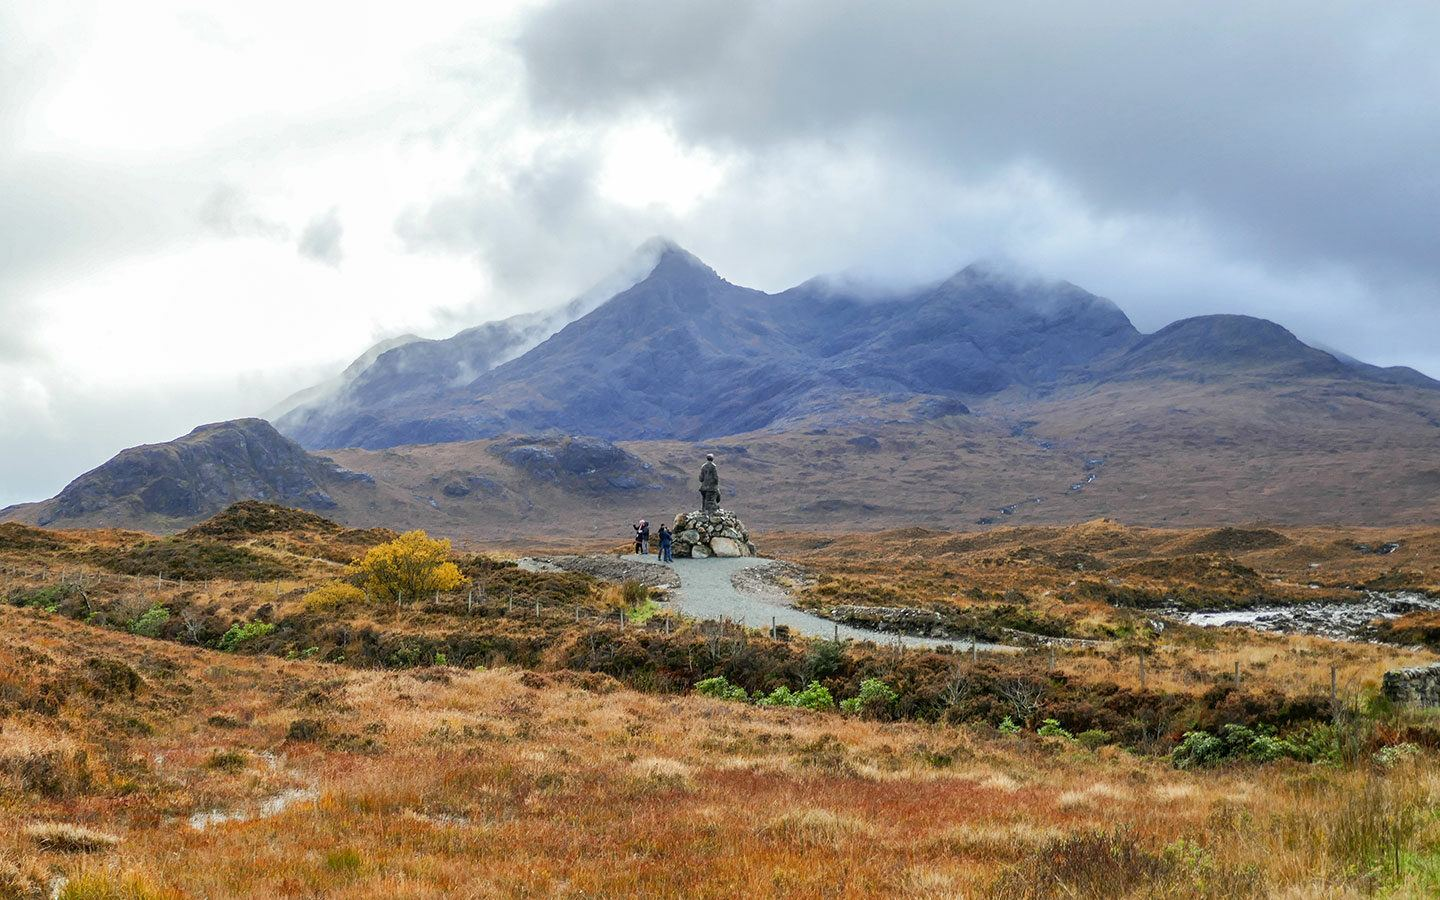 Views of the Cuillin Mountains from Sligachan, Isle of Skye